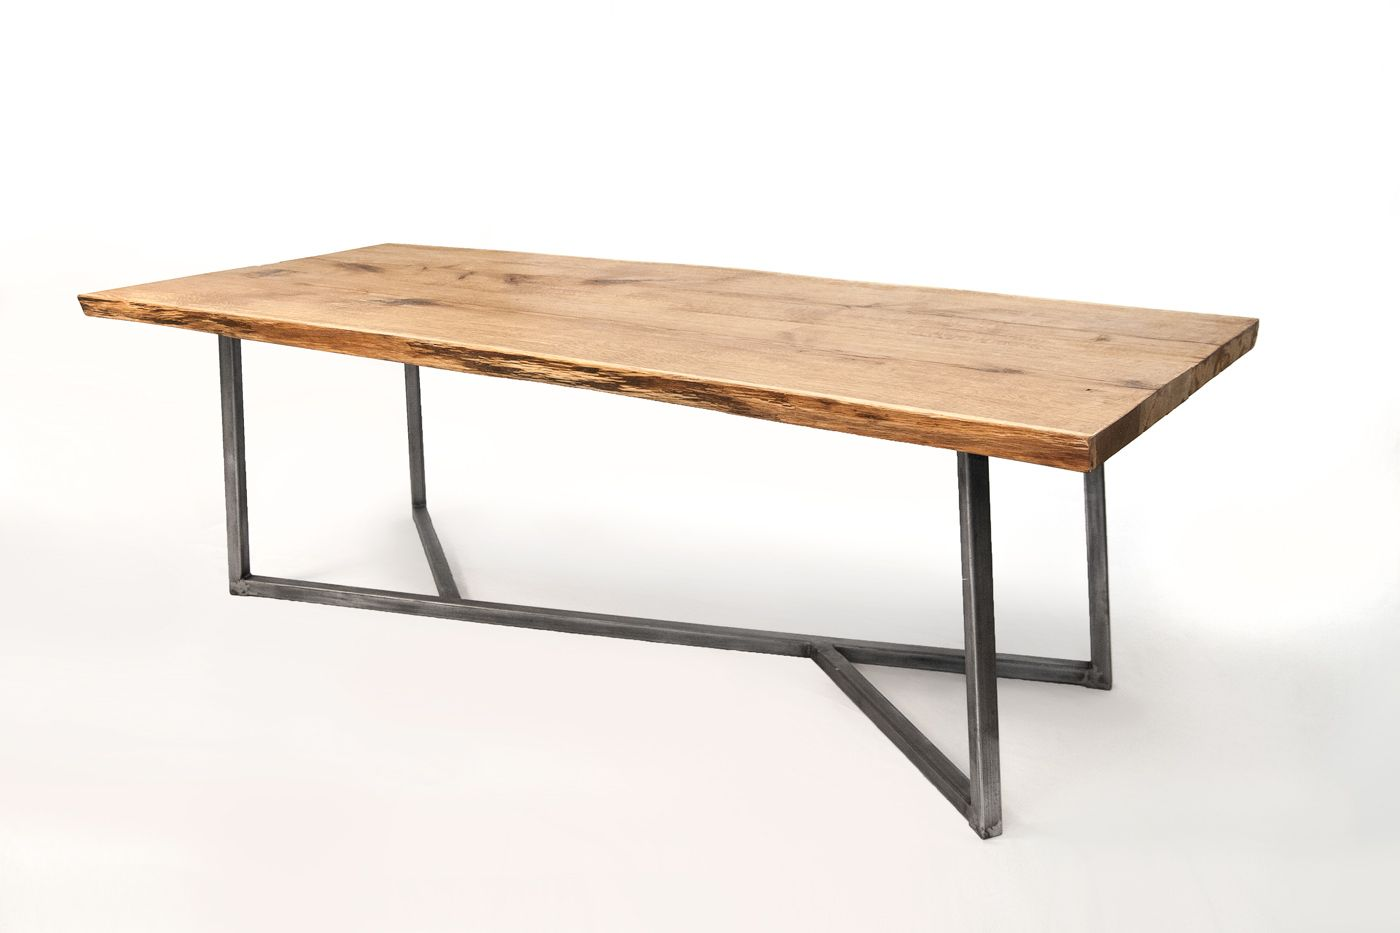 oak wood steel base built for eternity nutsandwoods oak steel table pinterest stolar. Black Bedroom Furniture Sets. Home Design Ideas